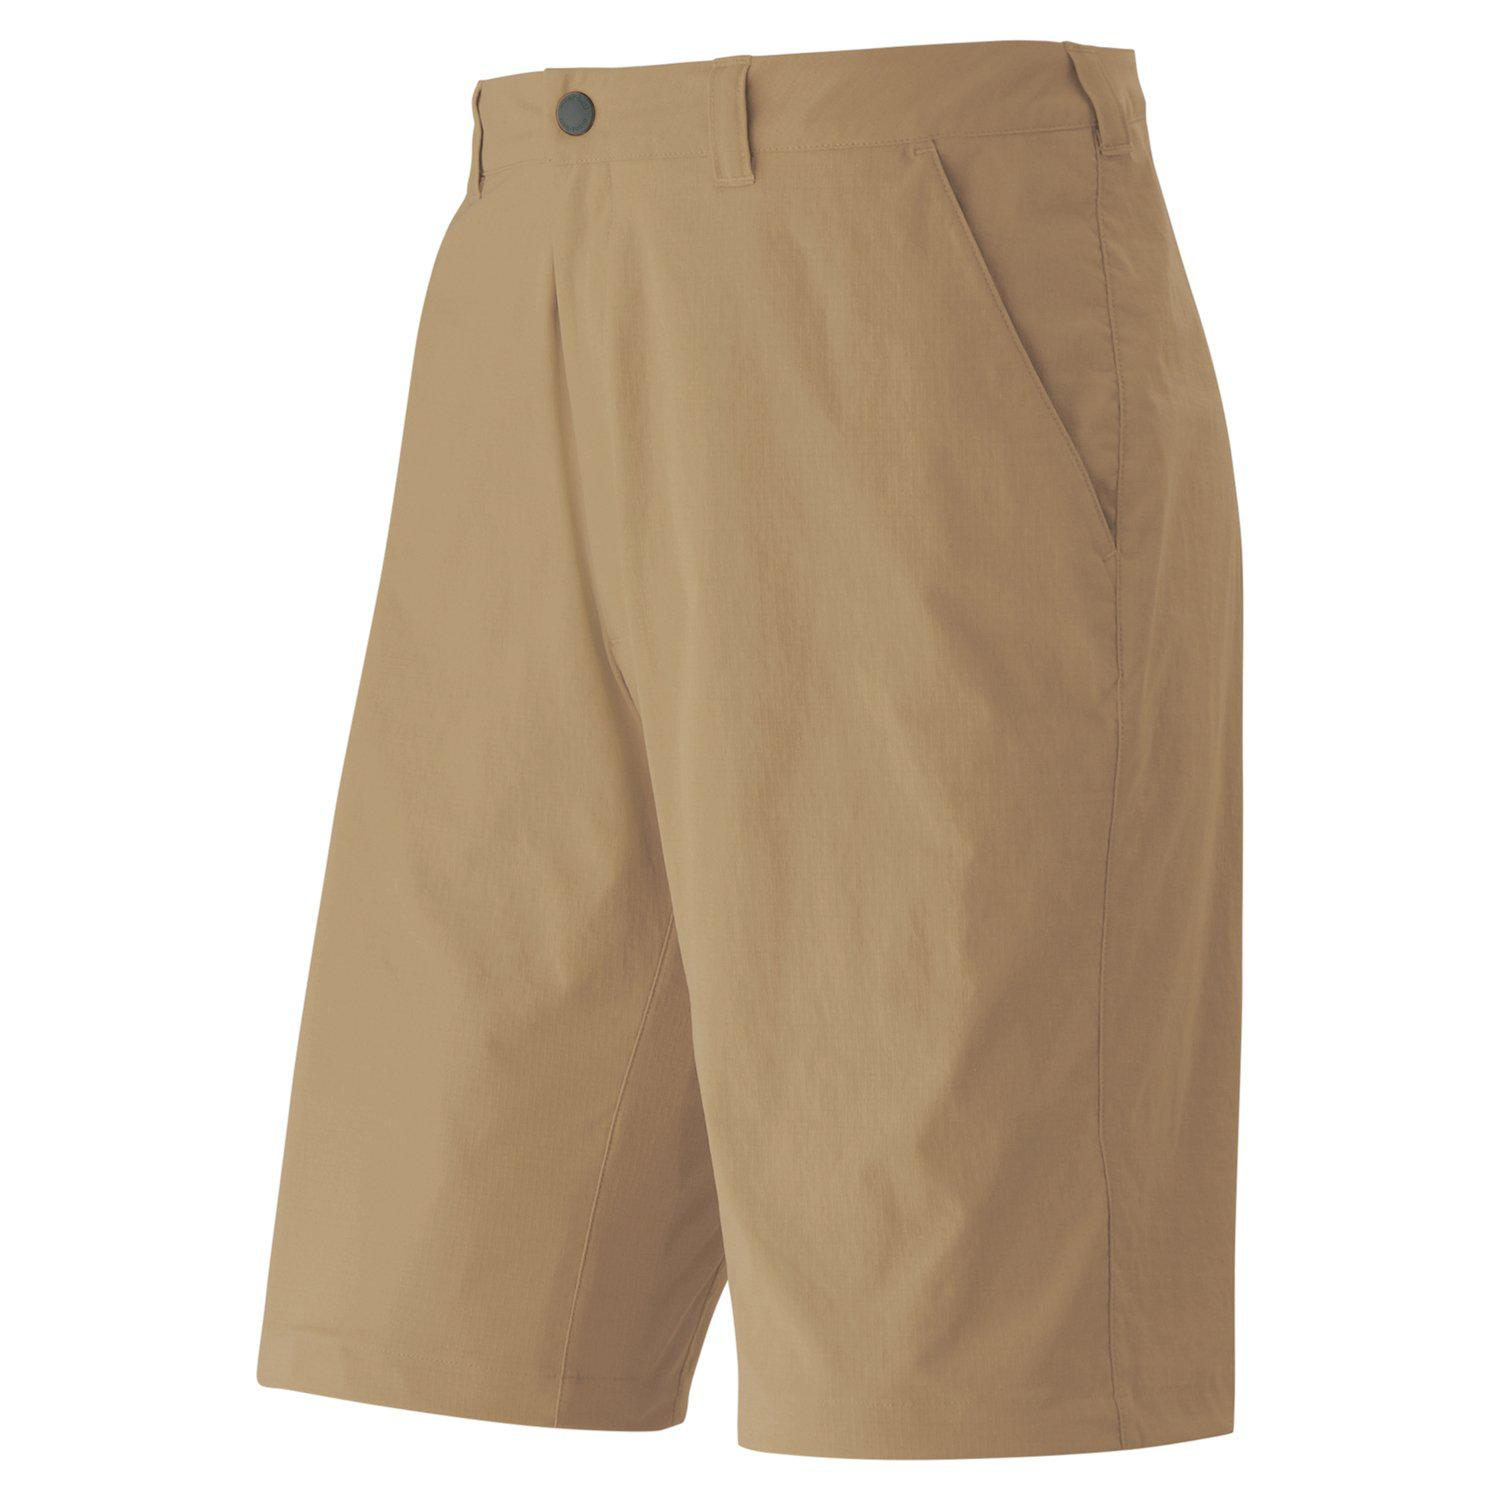 Montbell Men's Stretch OD Shorts